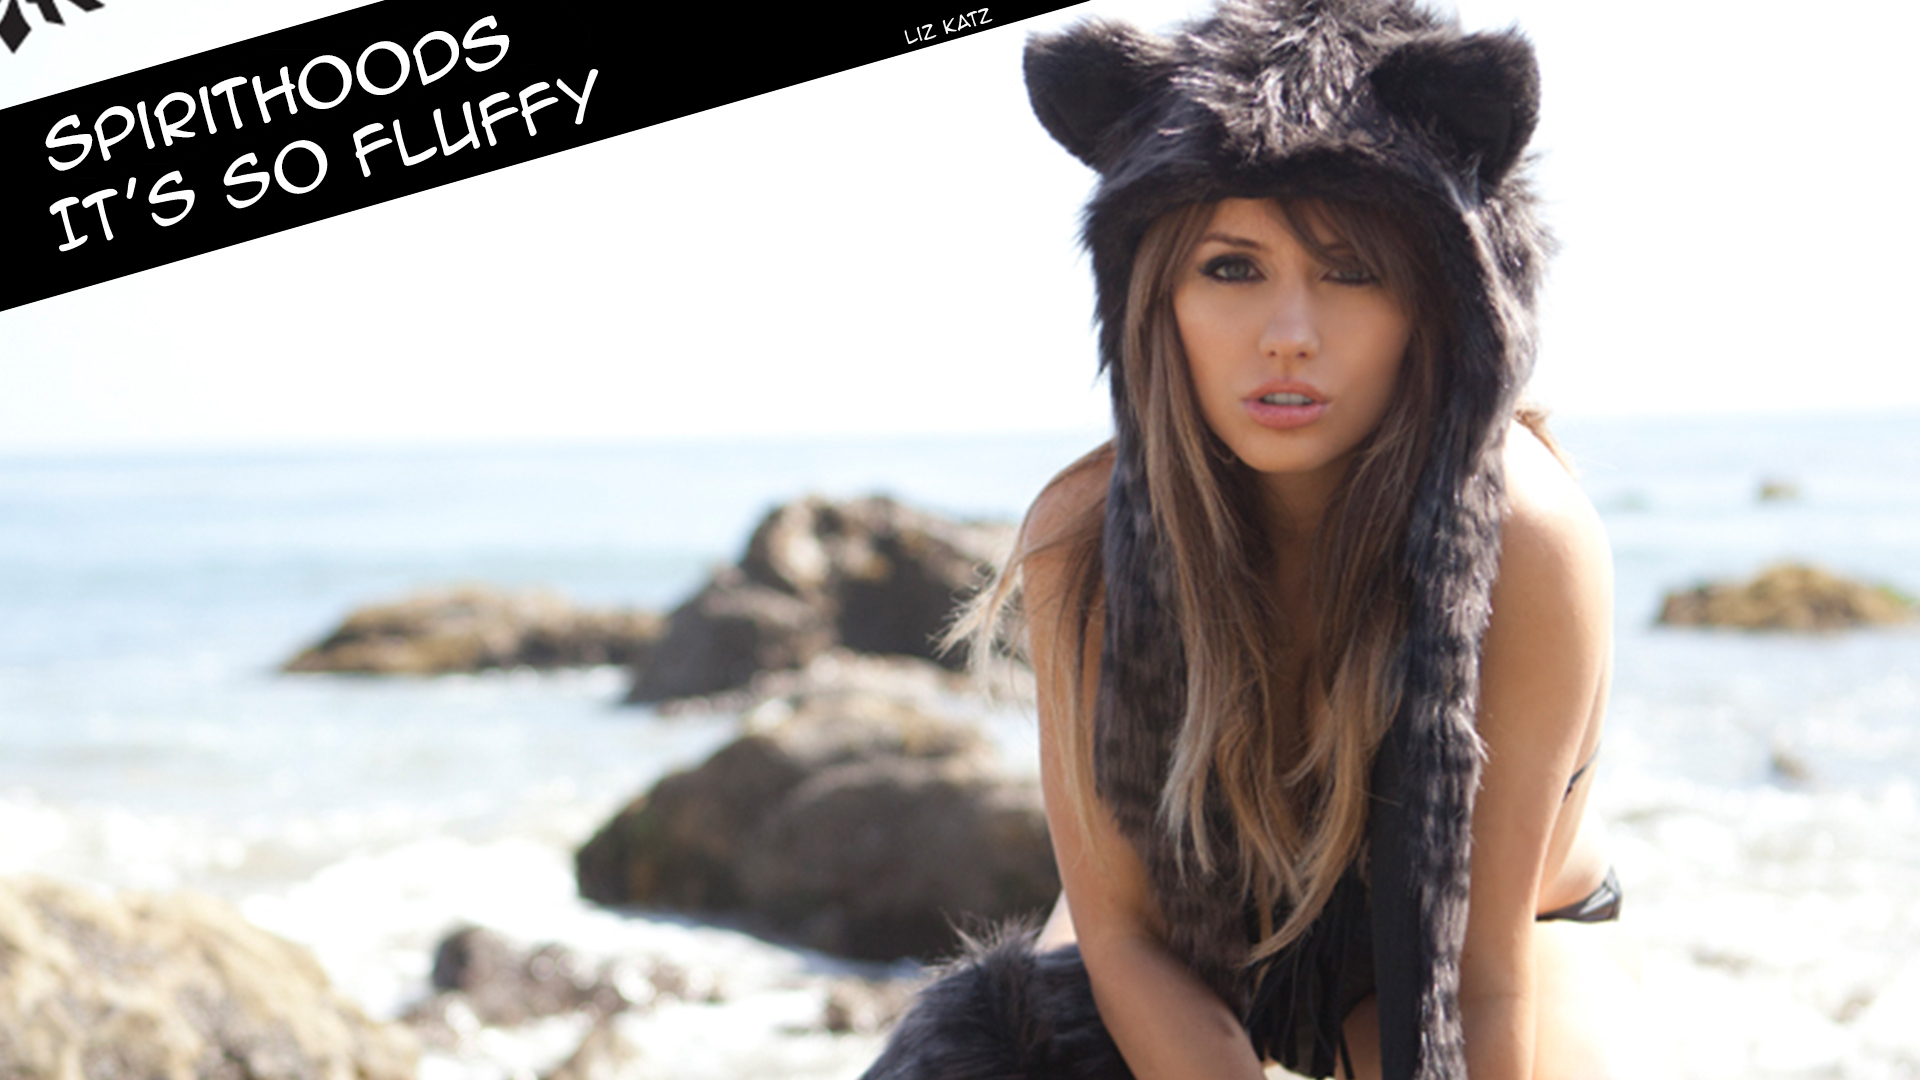 Spirithoods website thumb